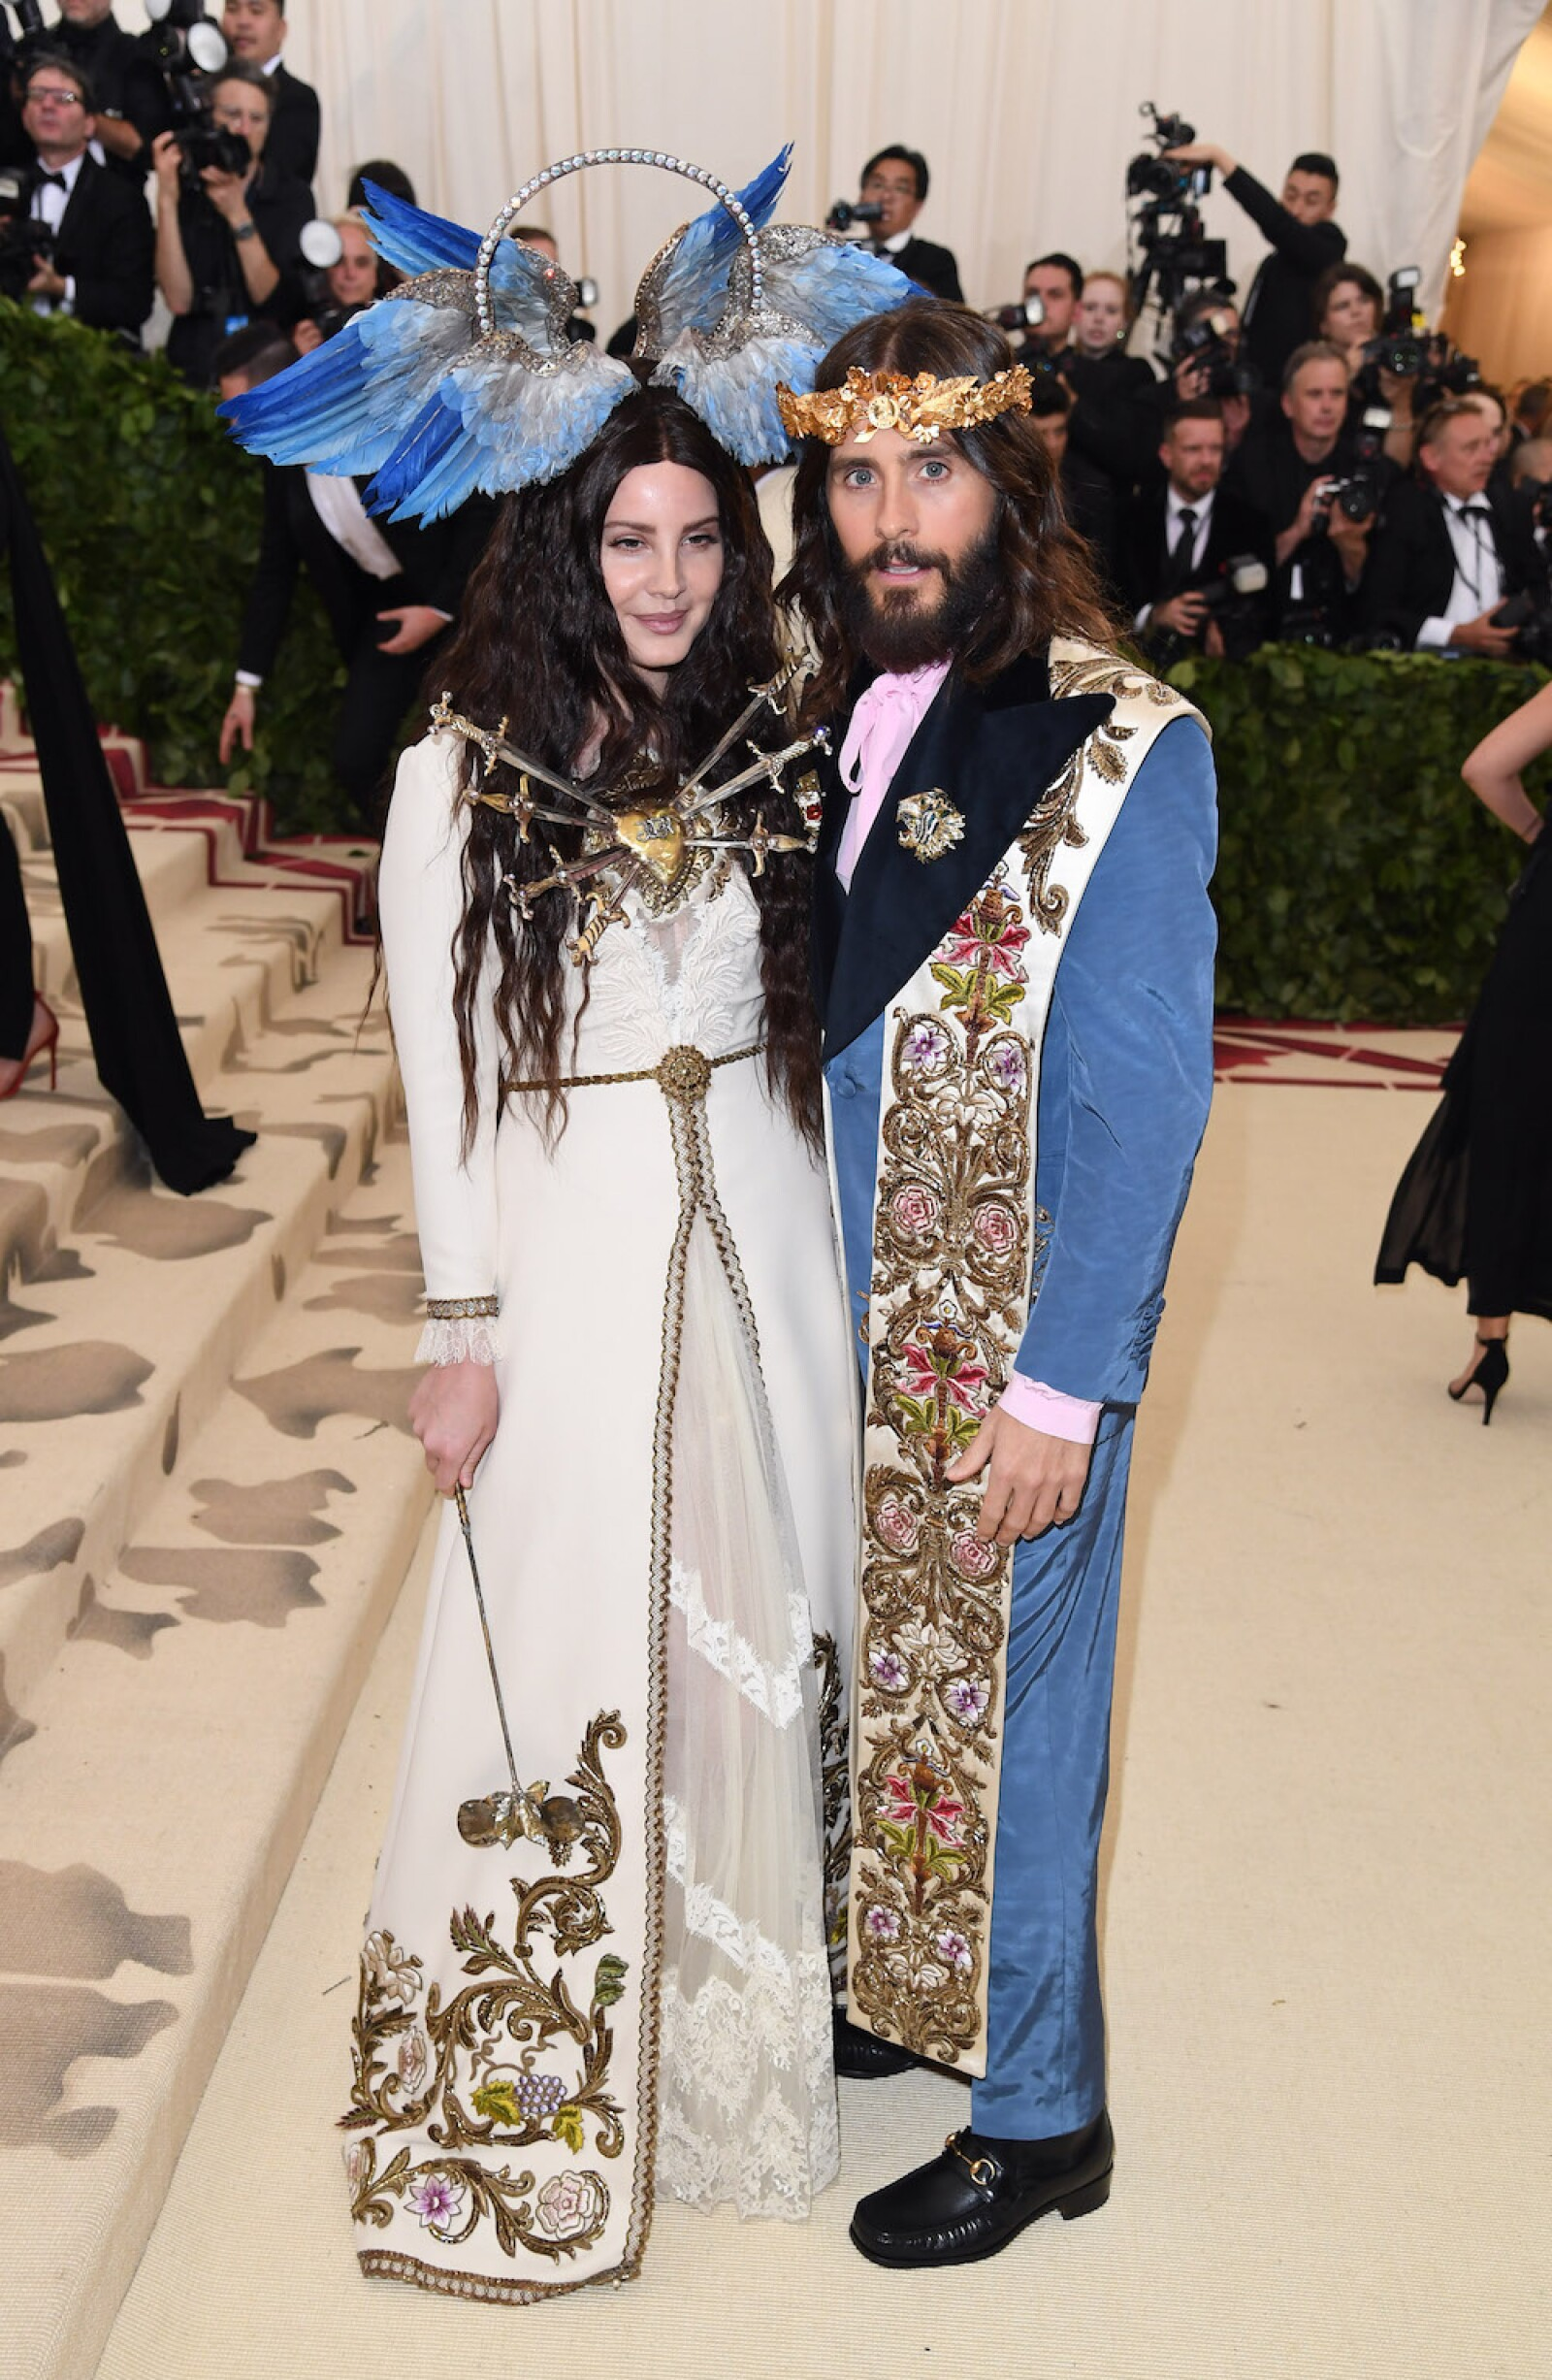 Lana Del Rey, and Jared Leto 2018